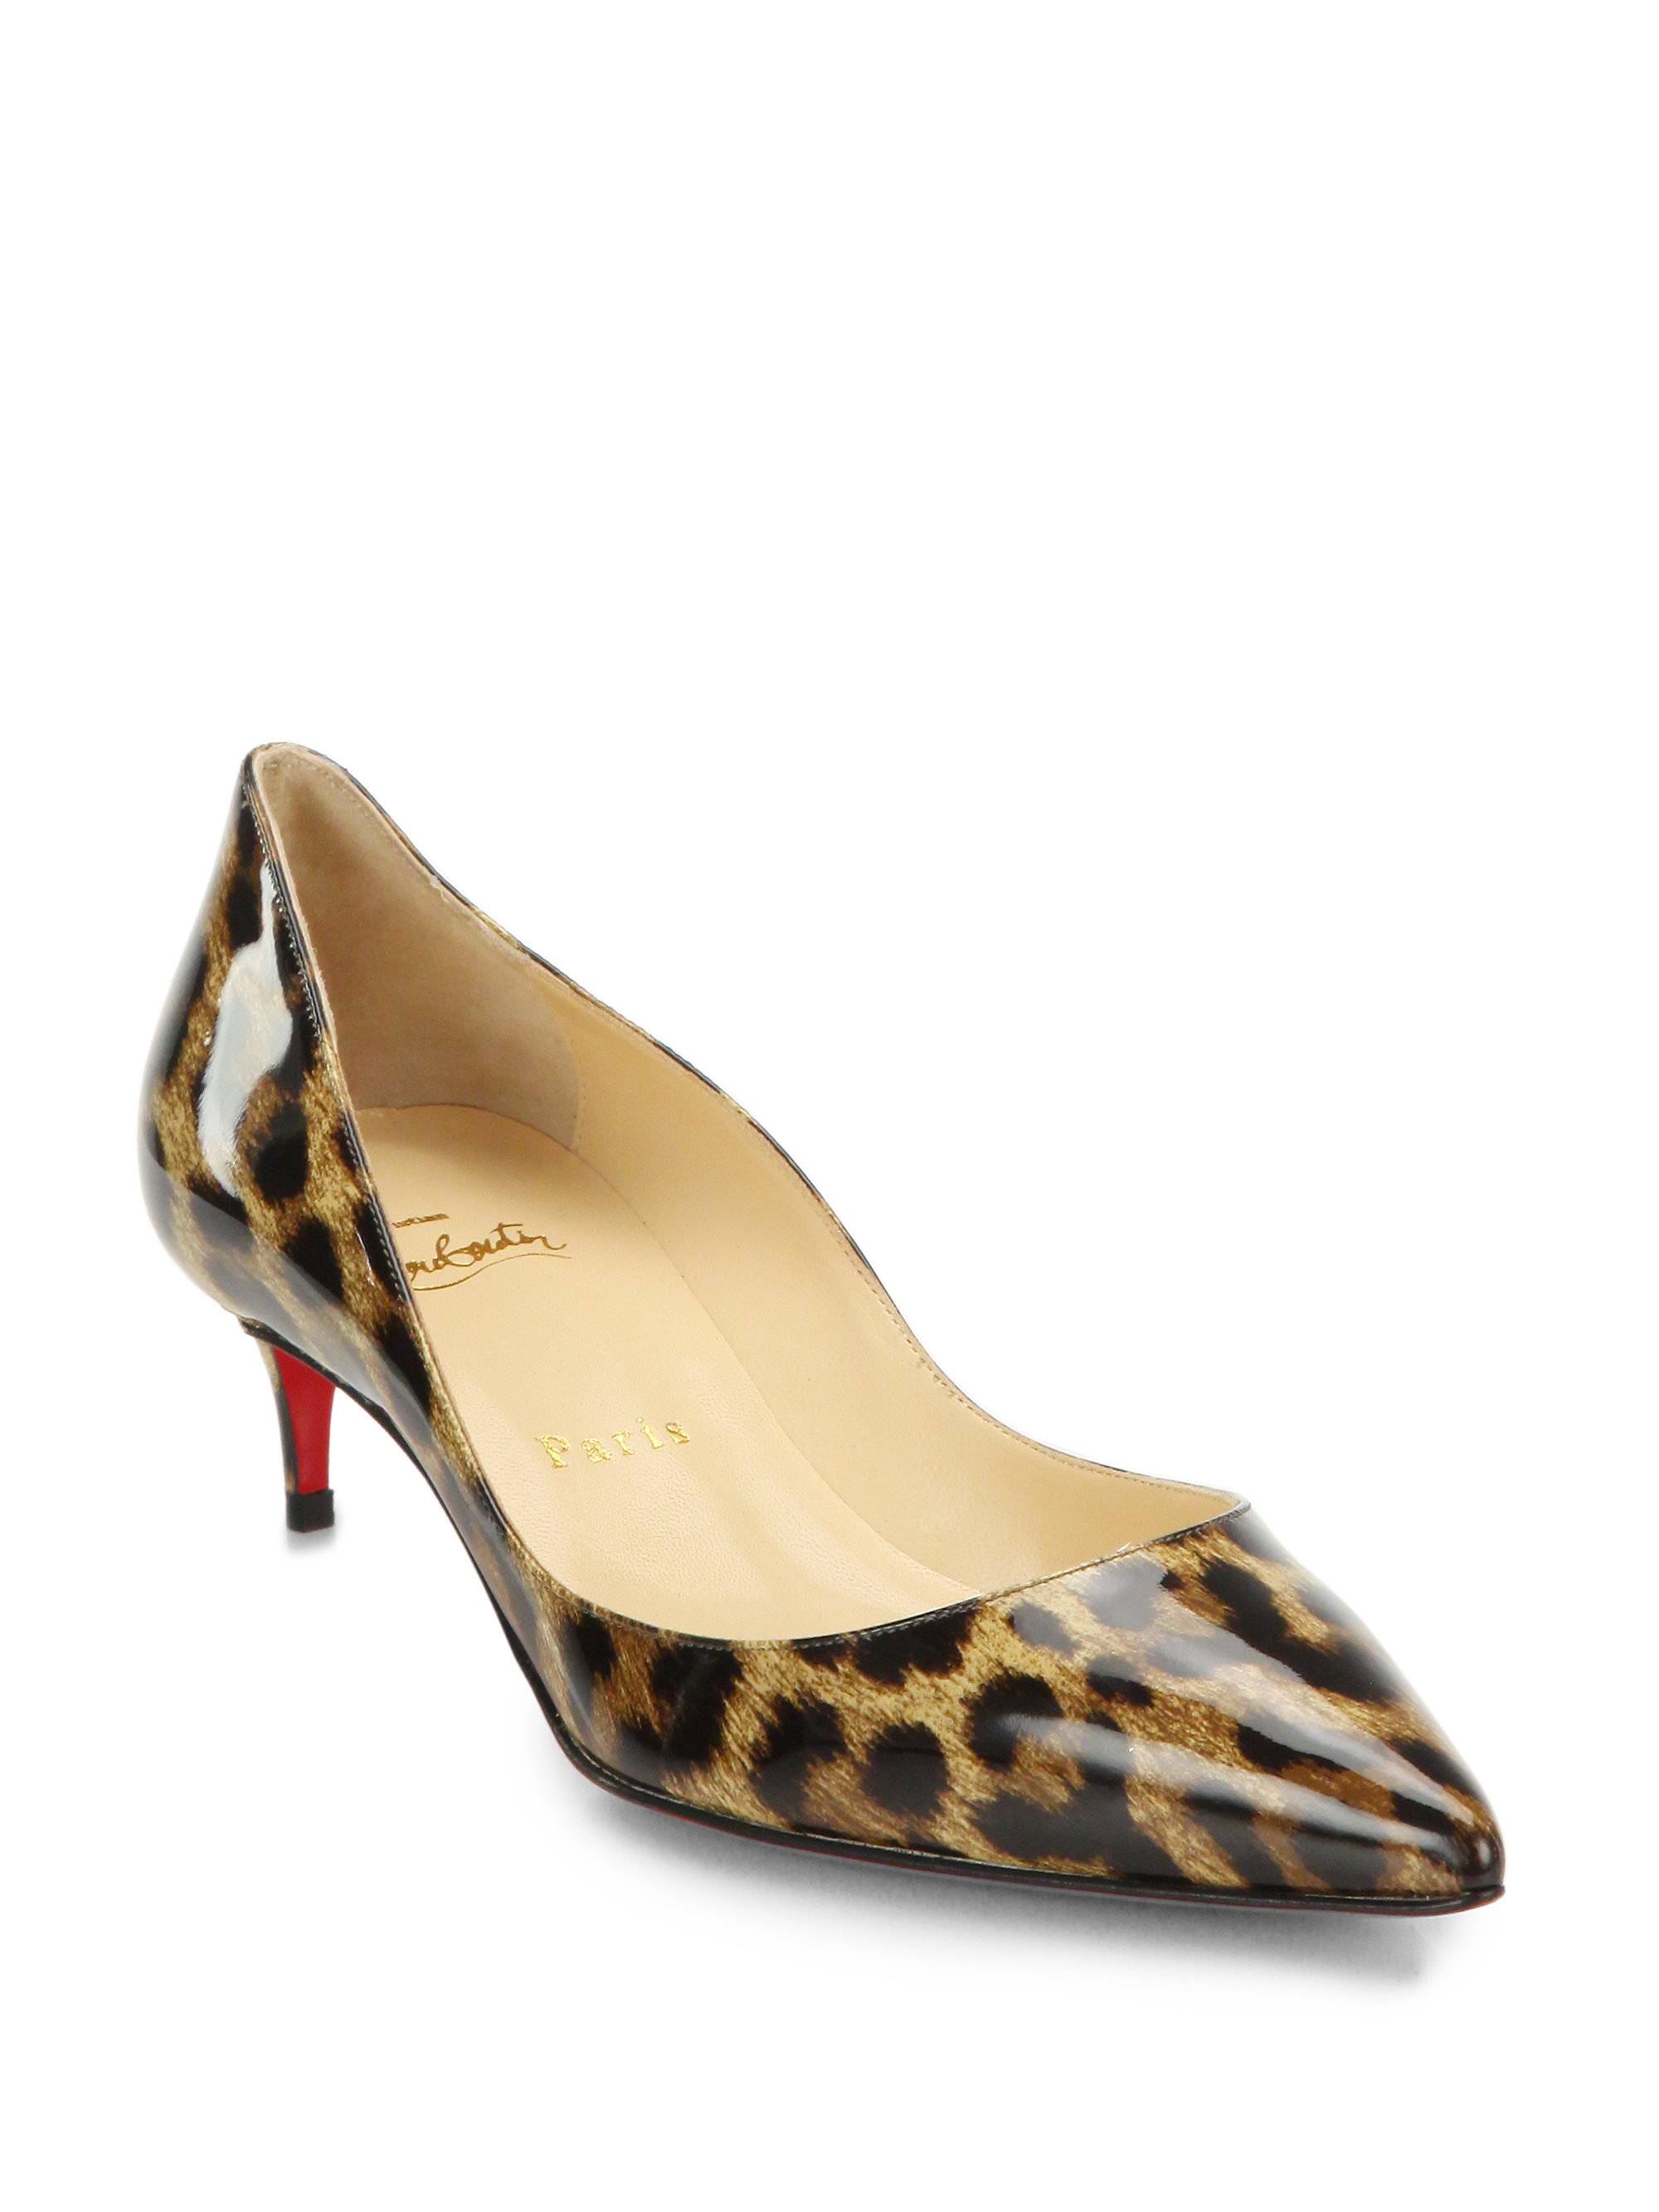 cheap mens christian louboutin loafers - christian louboutin pointed-toe pumps Brown leather | The Little ...